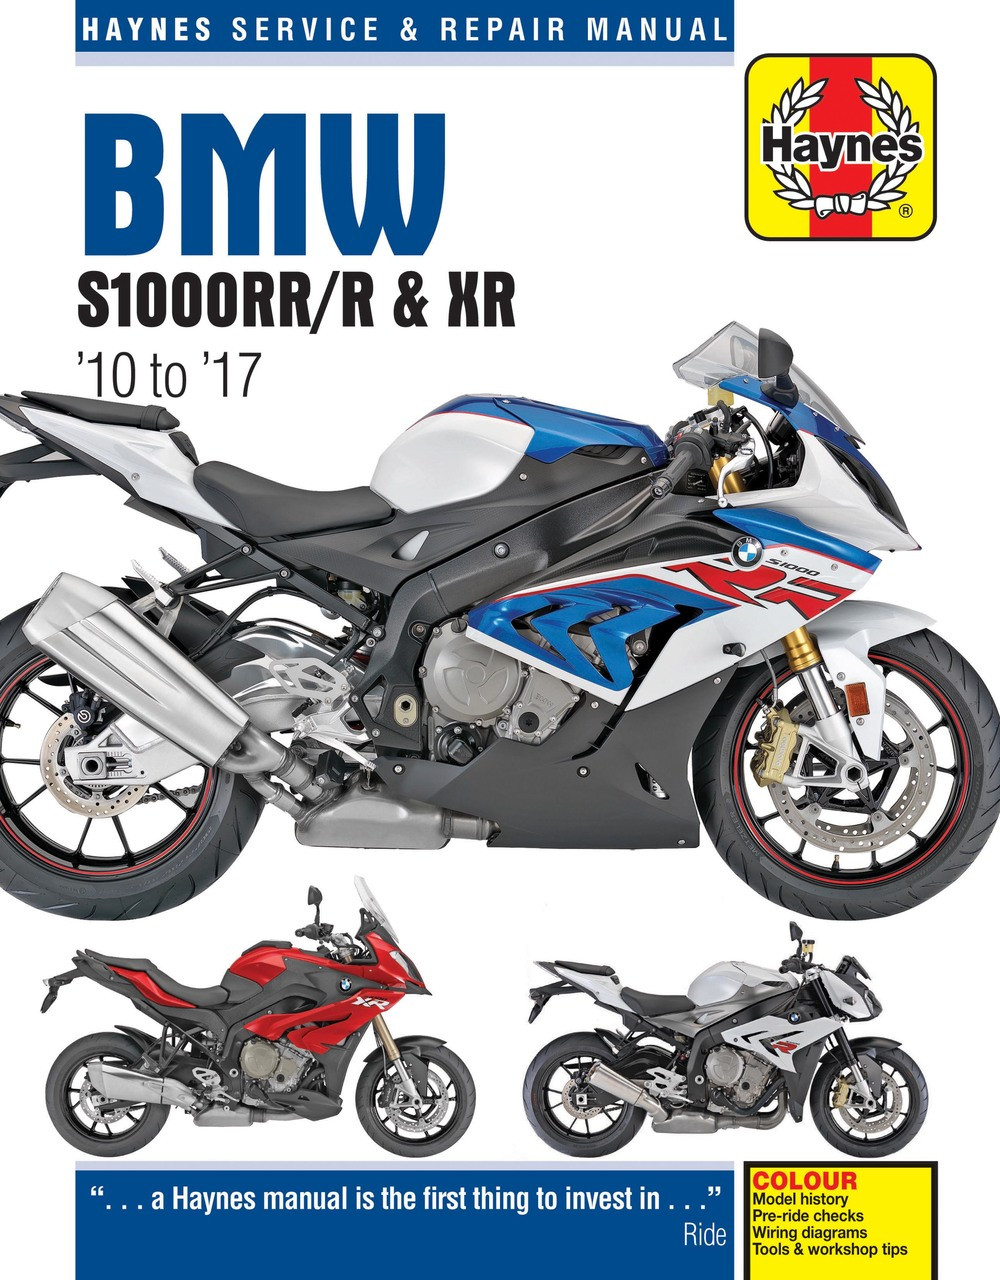 small resolution of bmw s1000rr s1000r s1000xr 2010 2017 workshop manual